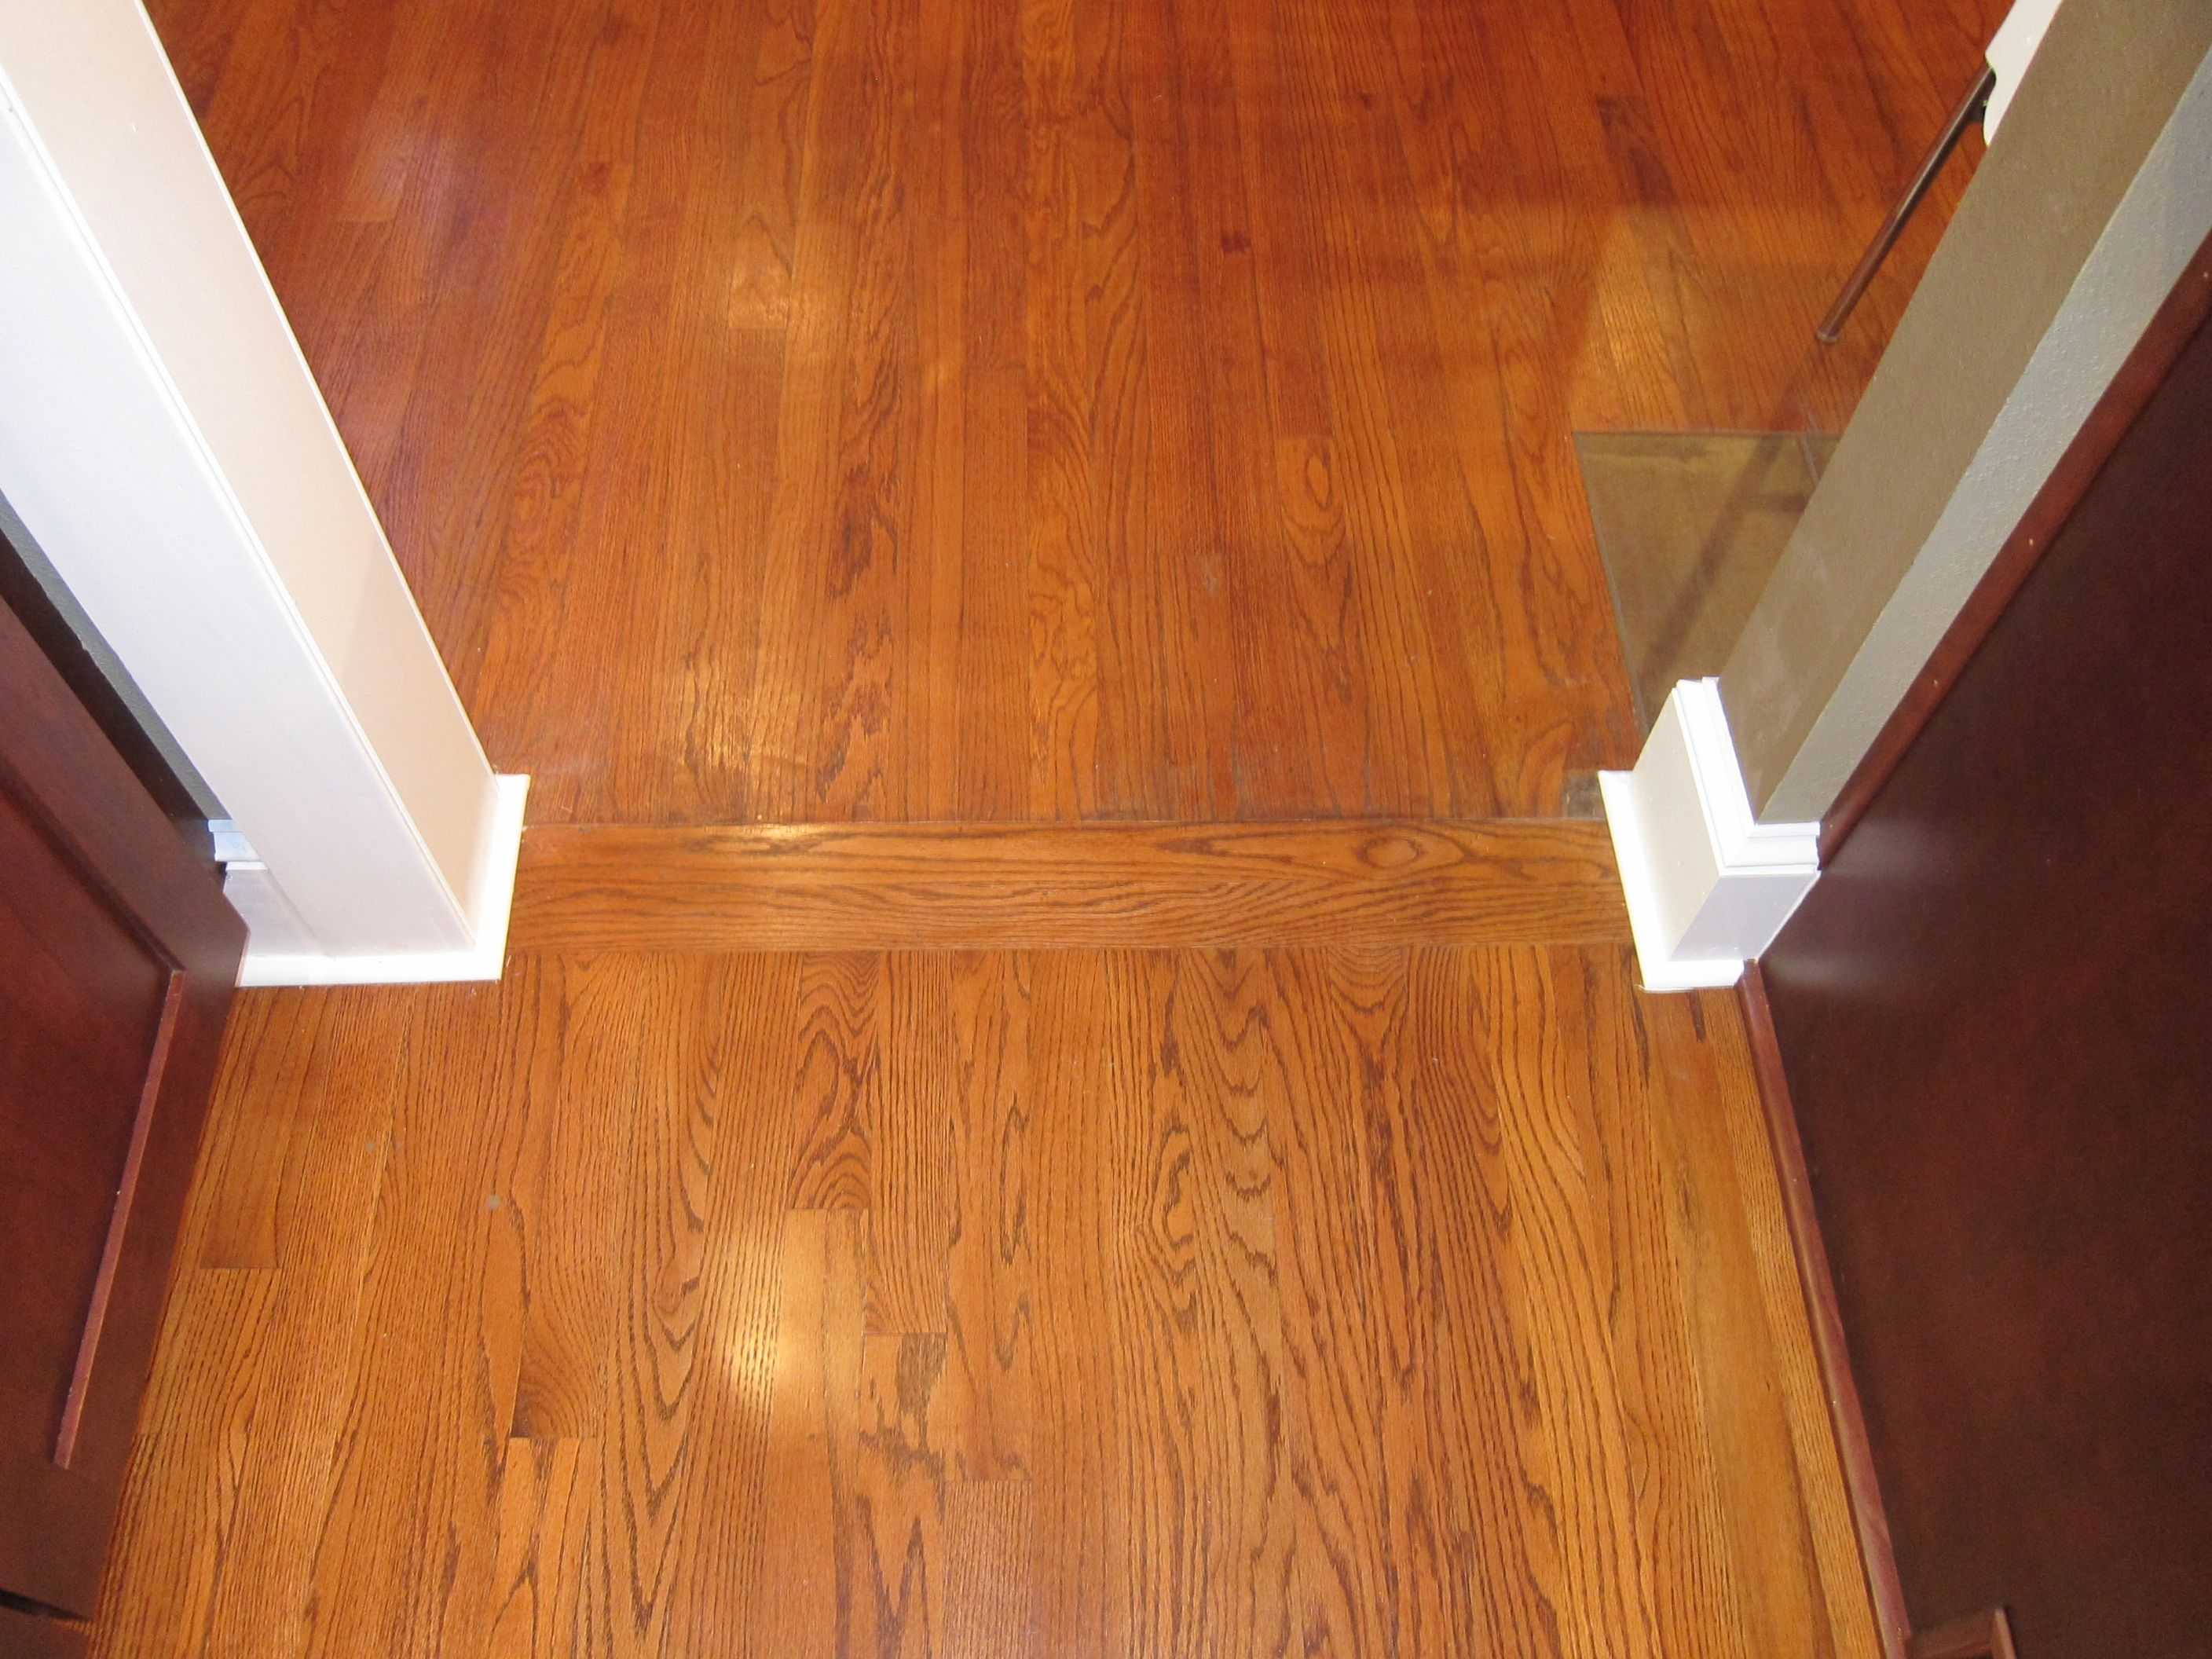 Transition Between Old Wood Floors And New Old And New Hardwoods With A Transition Strip Between Vintage Wood Floor Transition Flooring Flooring